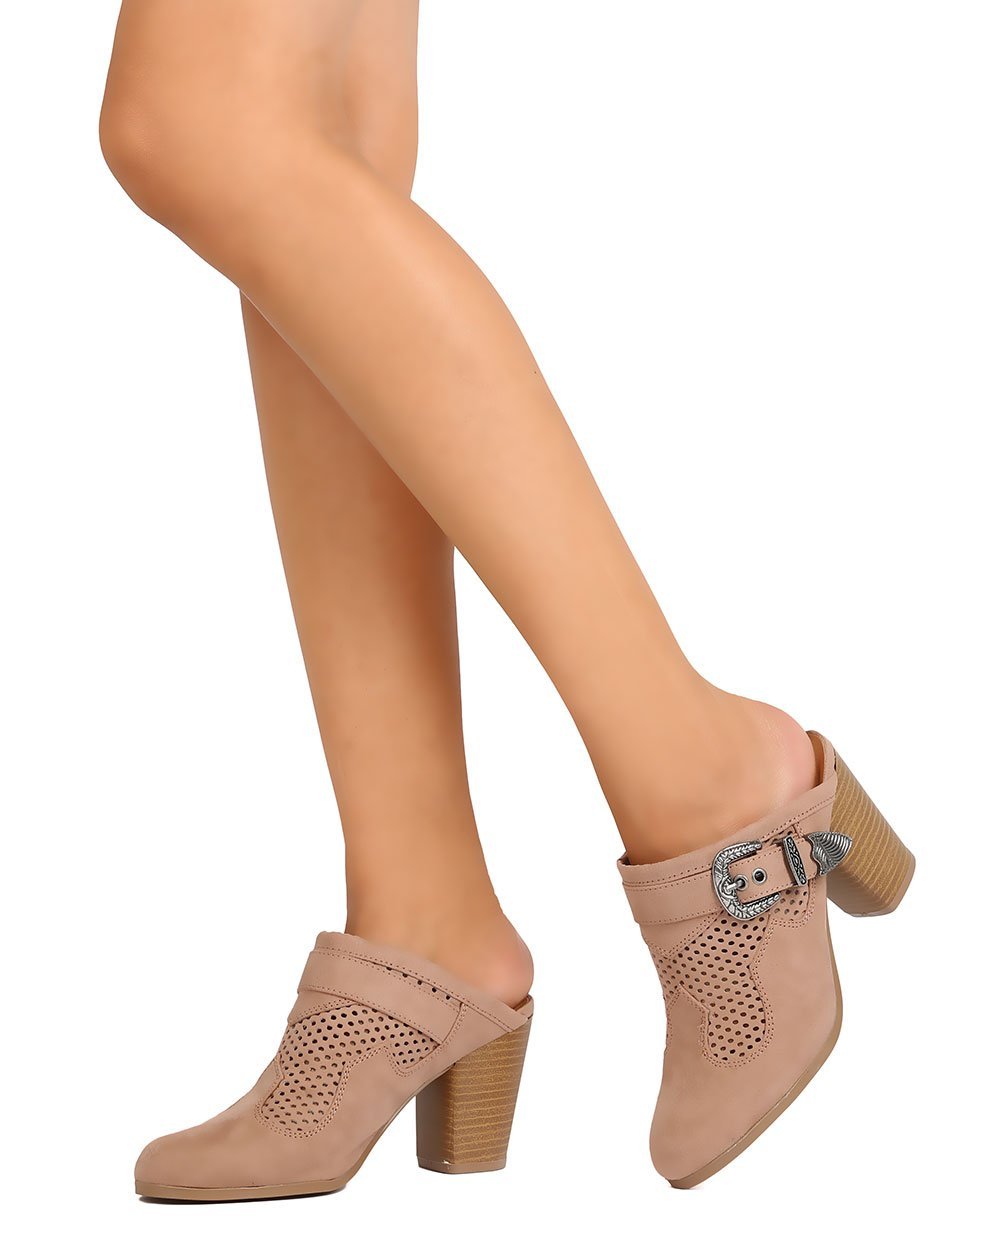 Qupid Women Faux Suede Perforated Buckled Chunky Heel Mule FD91 - Taupe (Size: 7.5) by Qupid (Image #6)